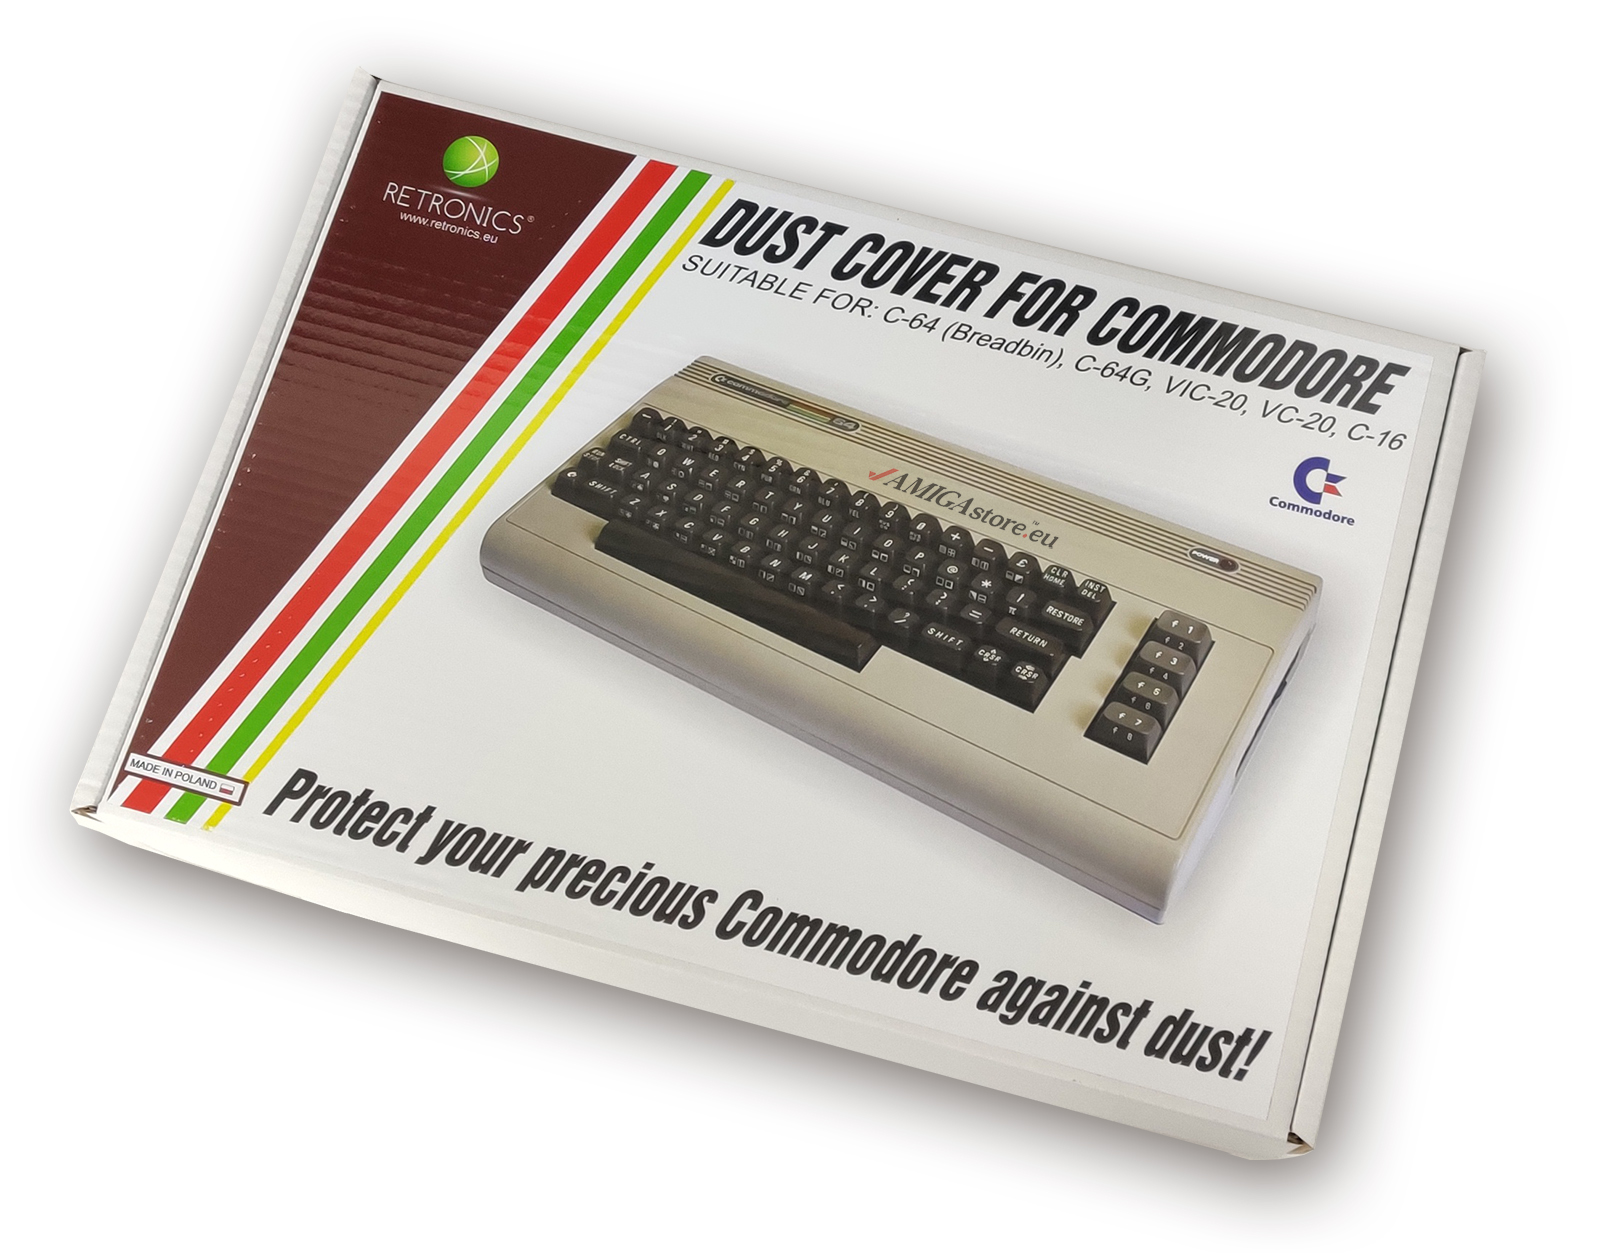 Dust Cover for Commodore Computers